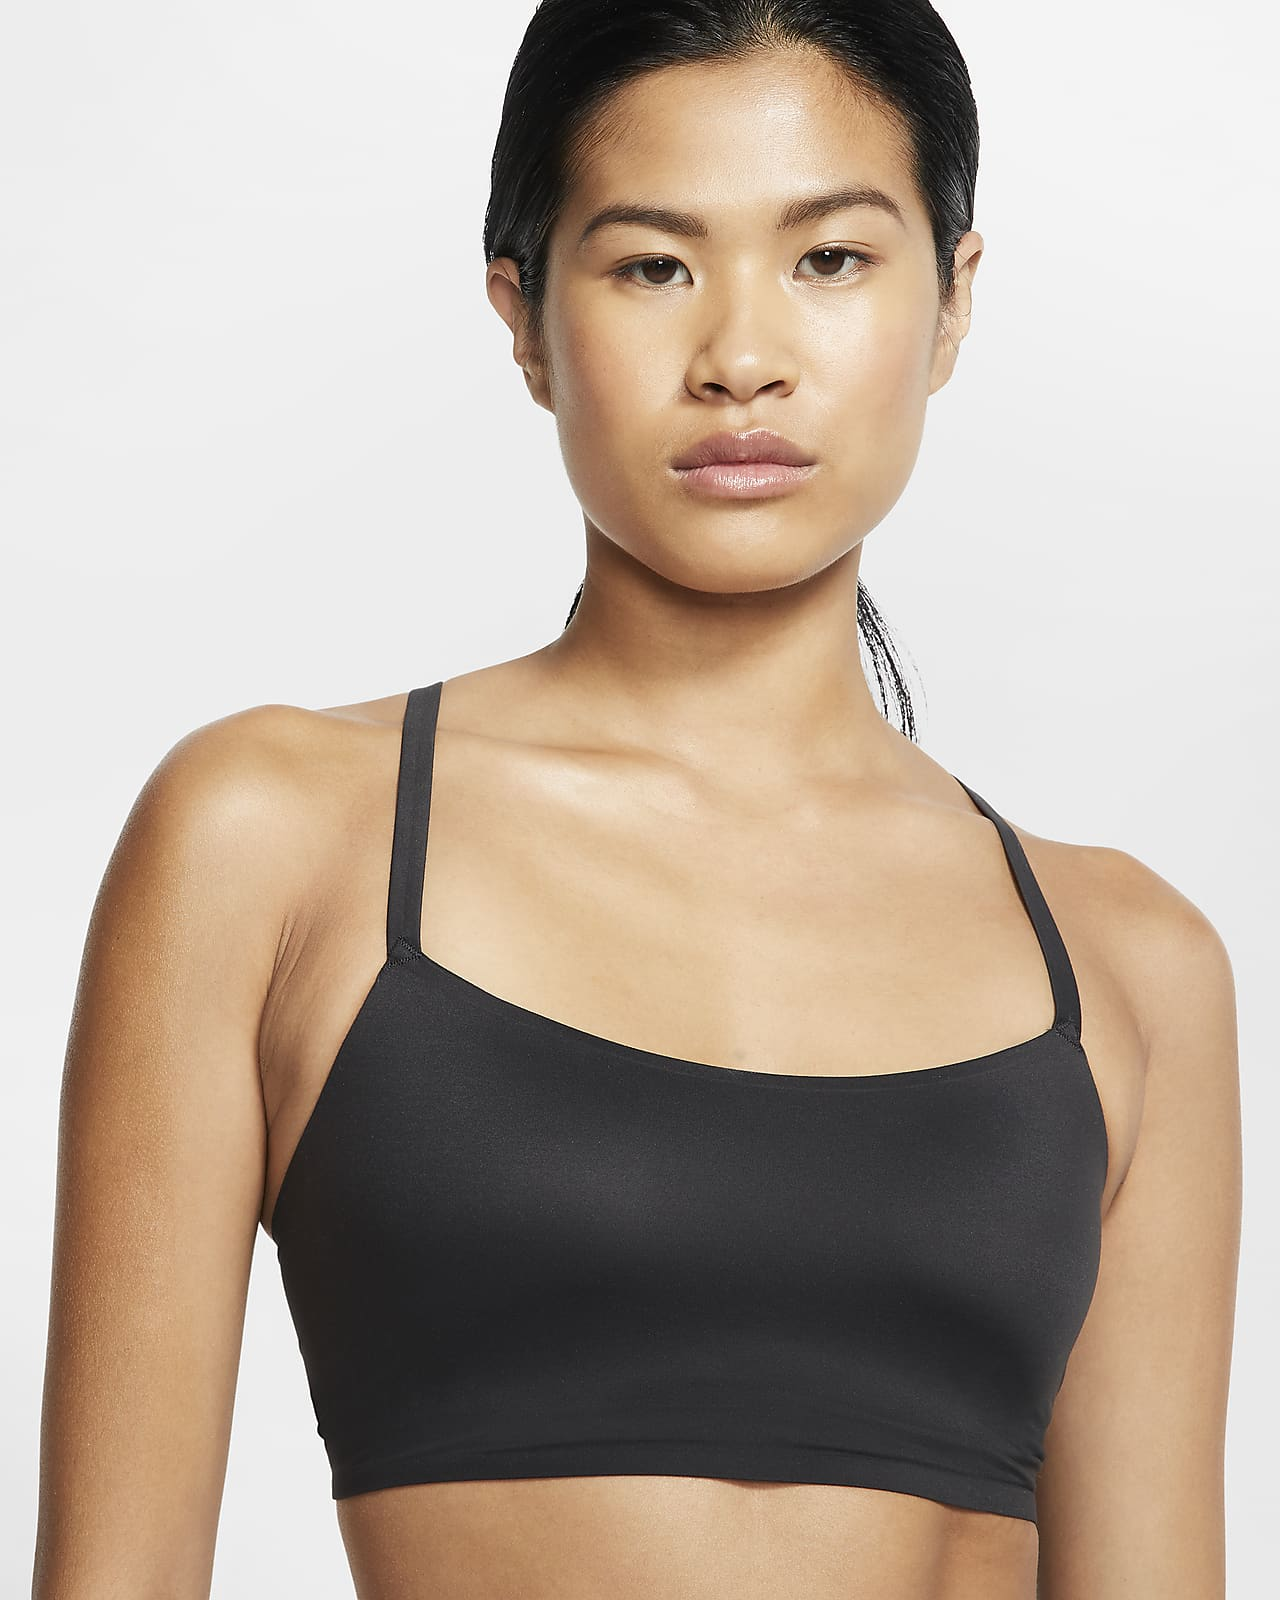 Nike Indy Luxe Women S Light Support 1 Piece Pad Sports Bra Nike Com